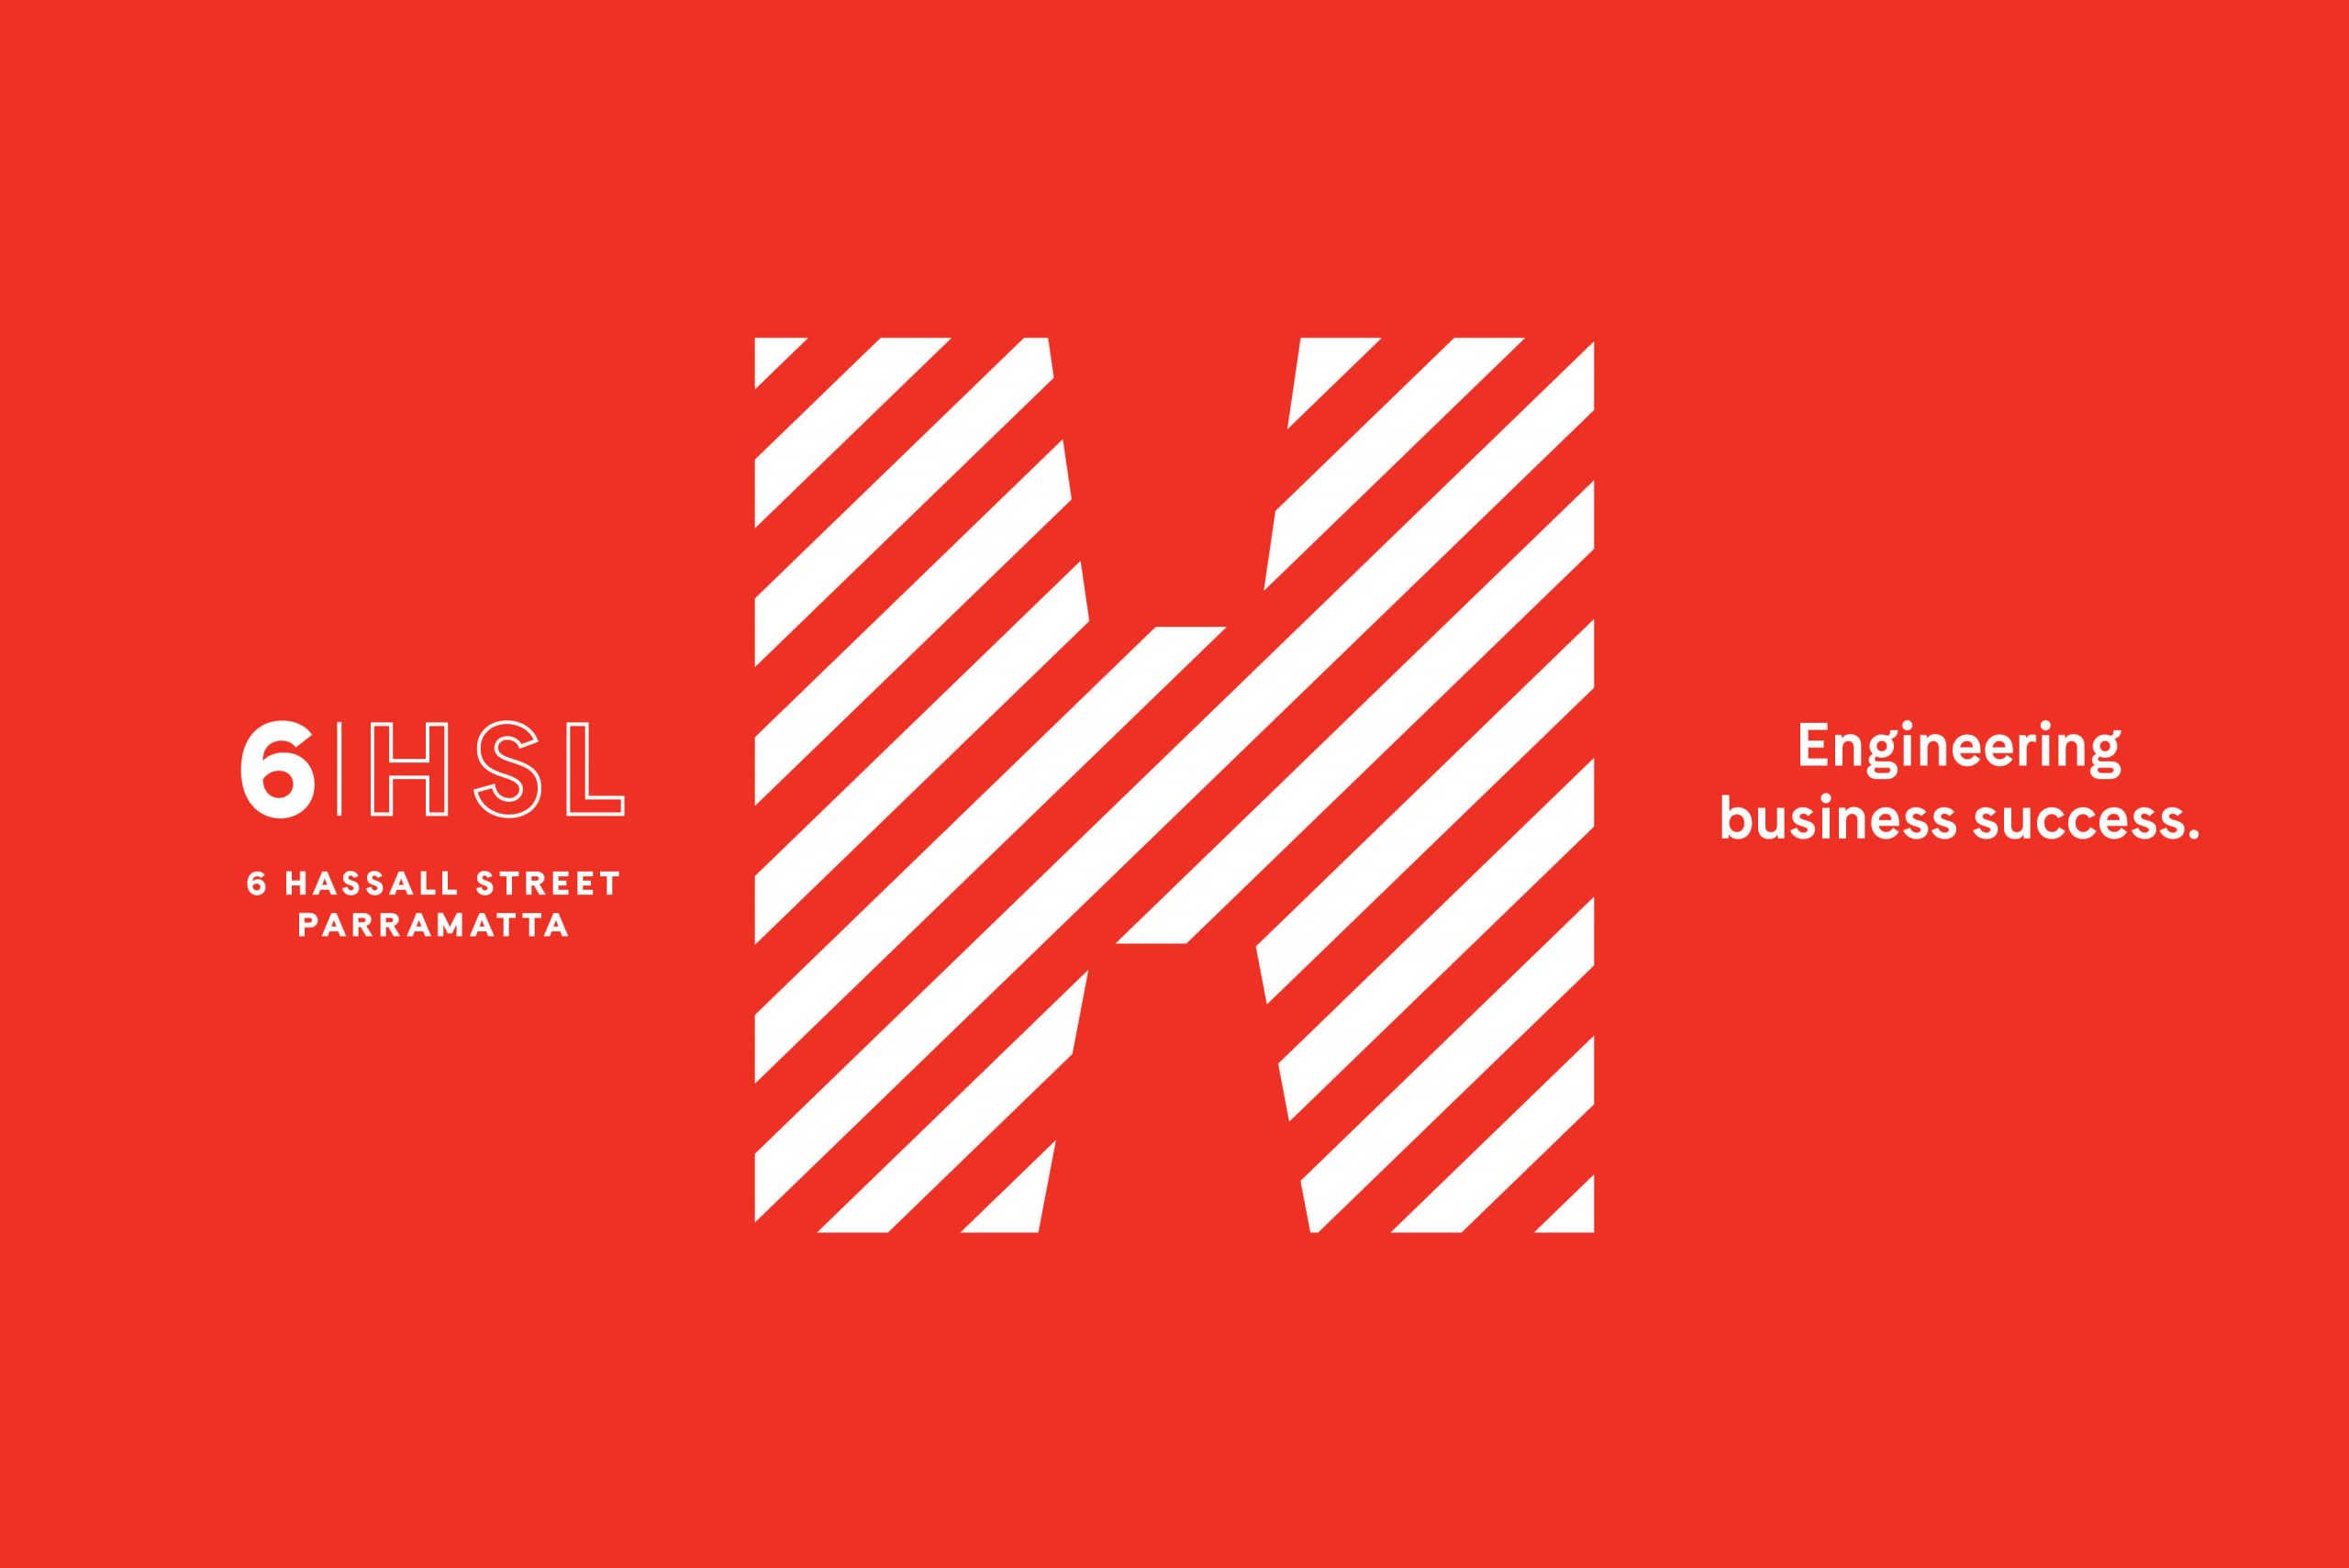 6 Hassall St Property Brand for Charter Hall - Logo Mark with Positioning Statement